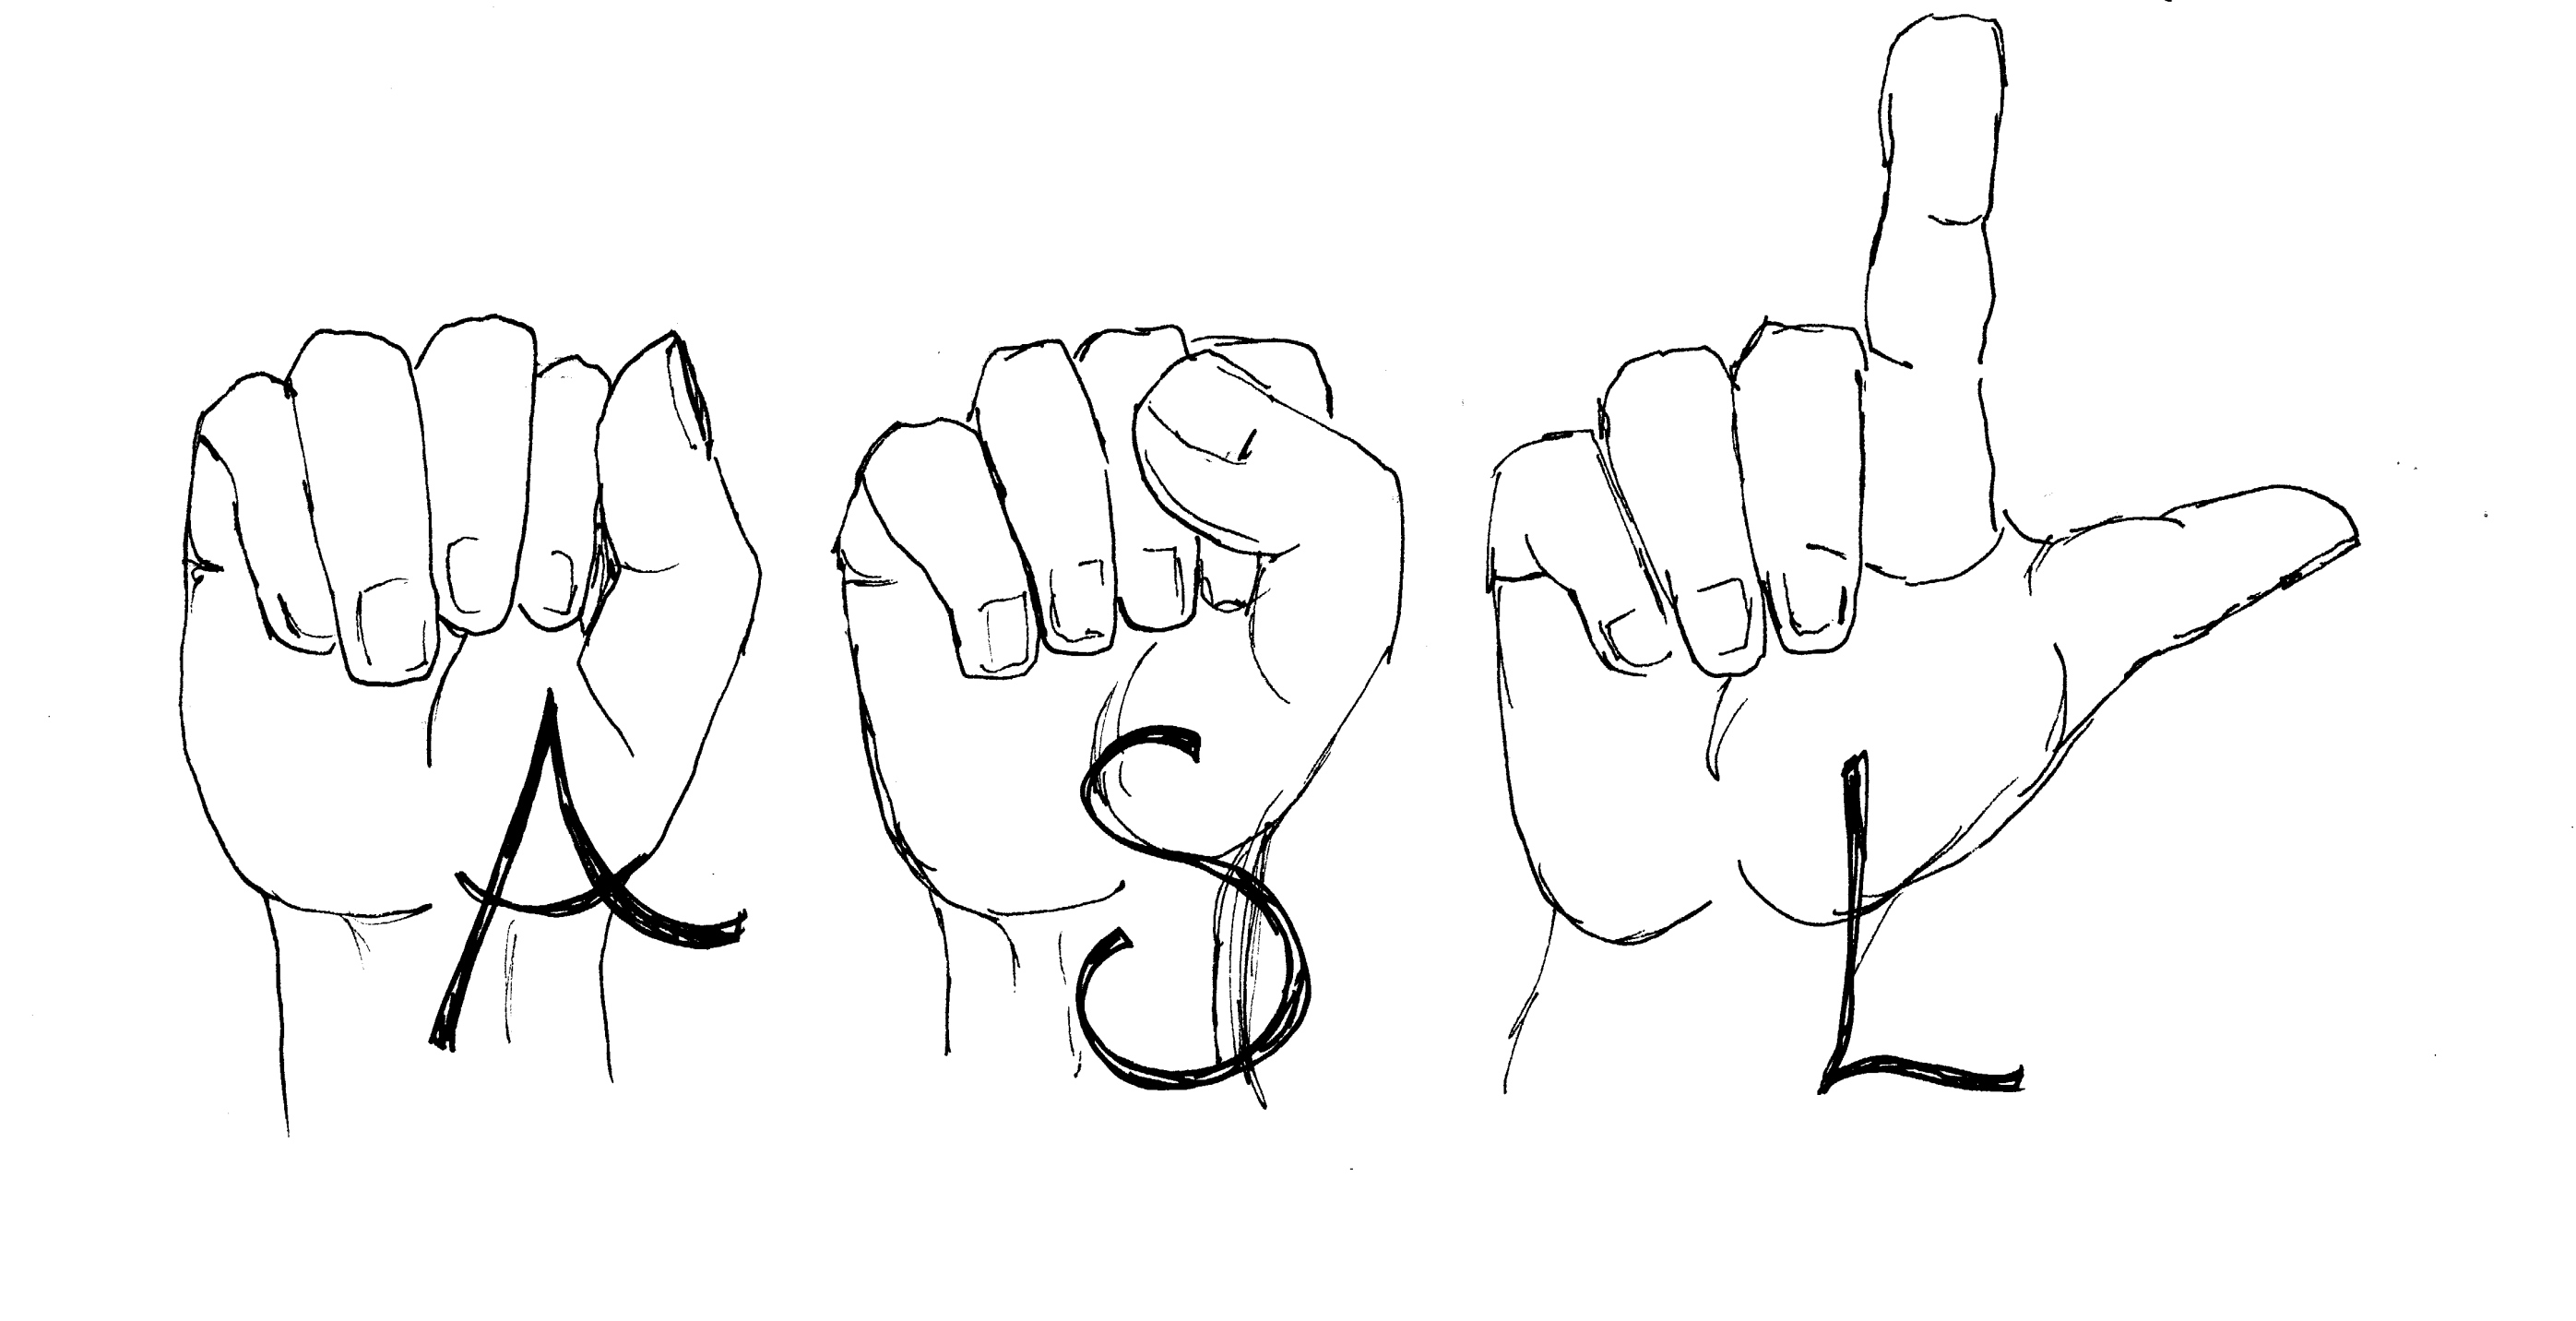 Asl clipart png black and white download 67+ Asl Clip Art | ClipartLook png black and white download